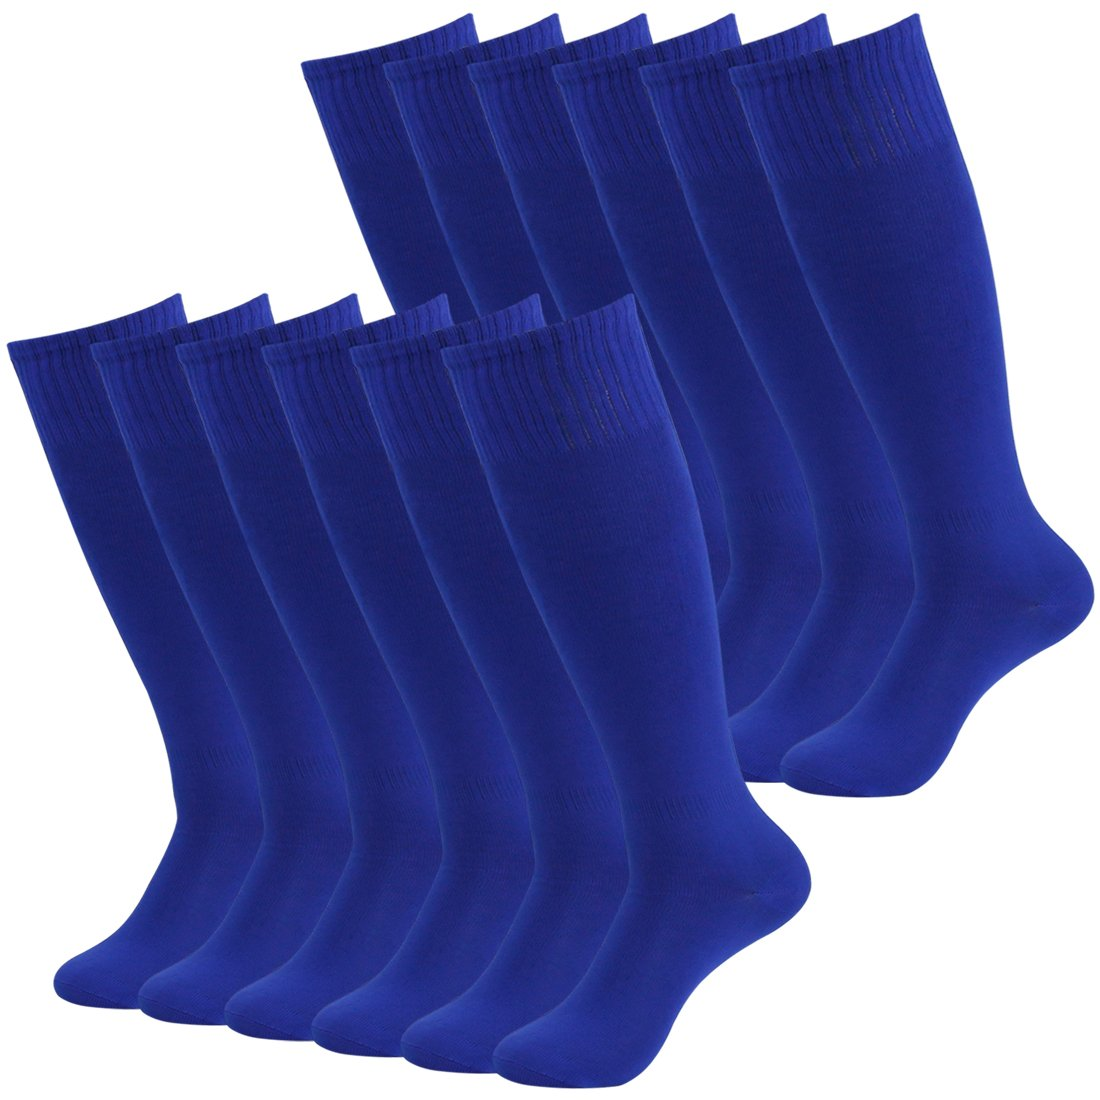 Fasoar Unisex Knee High Athletic Stretch Rugby Soccer Sports Hosiery 12 Pack Blue  12 Pack blue  One Size by Fasoar